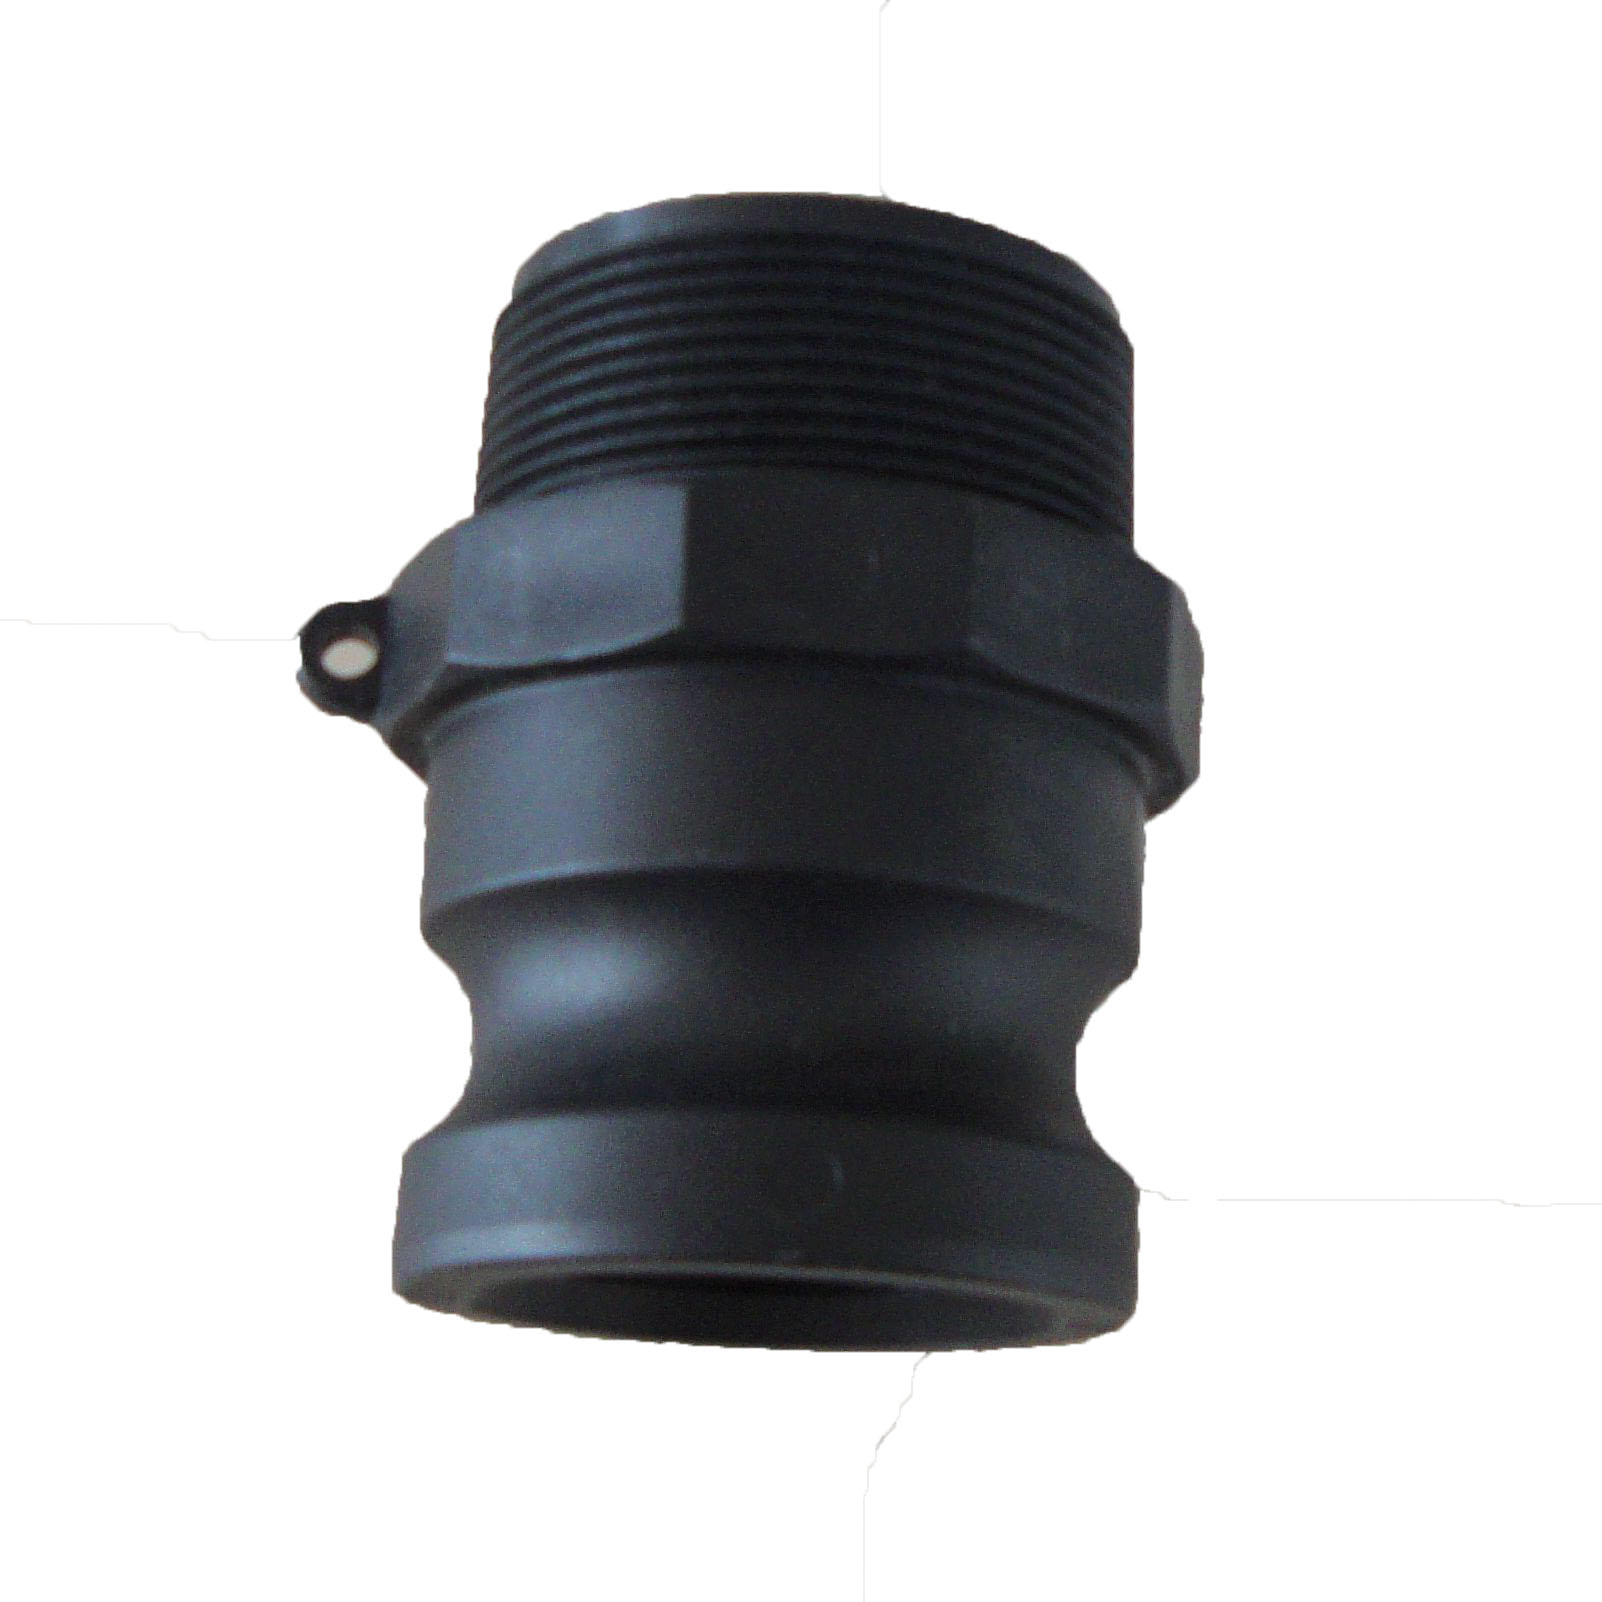 Ibc water tank fitting pp camlock inch male part f